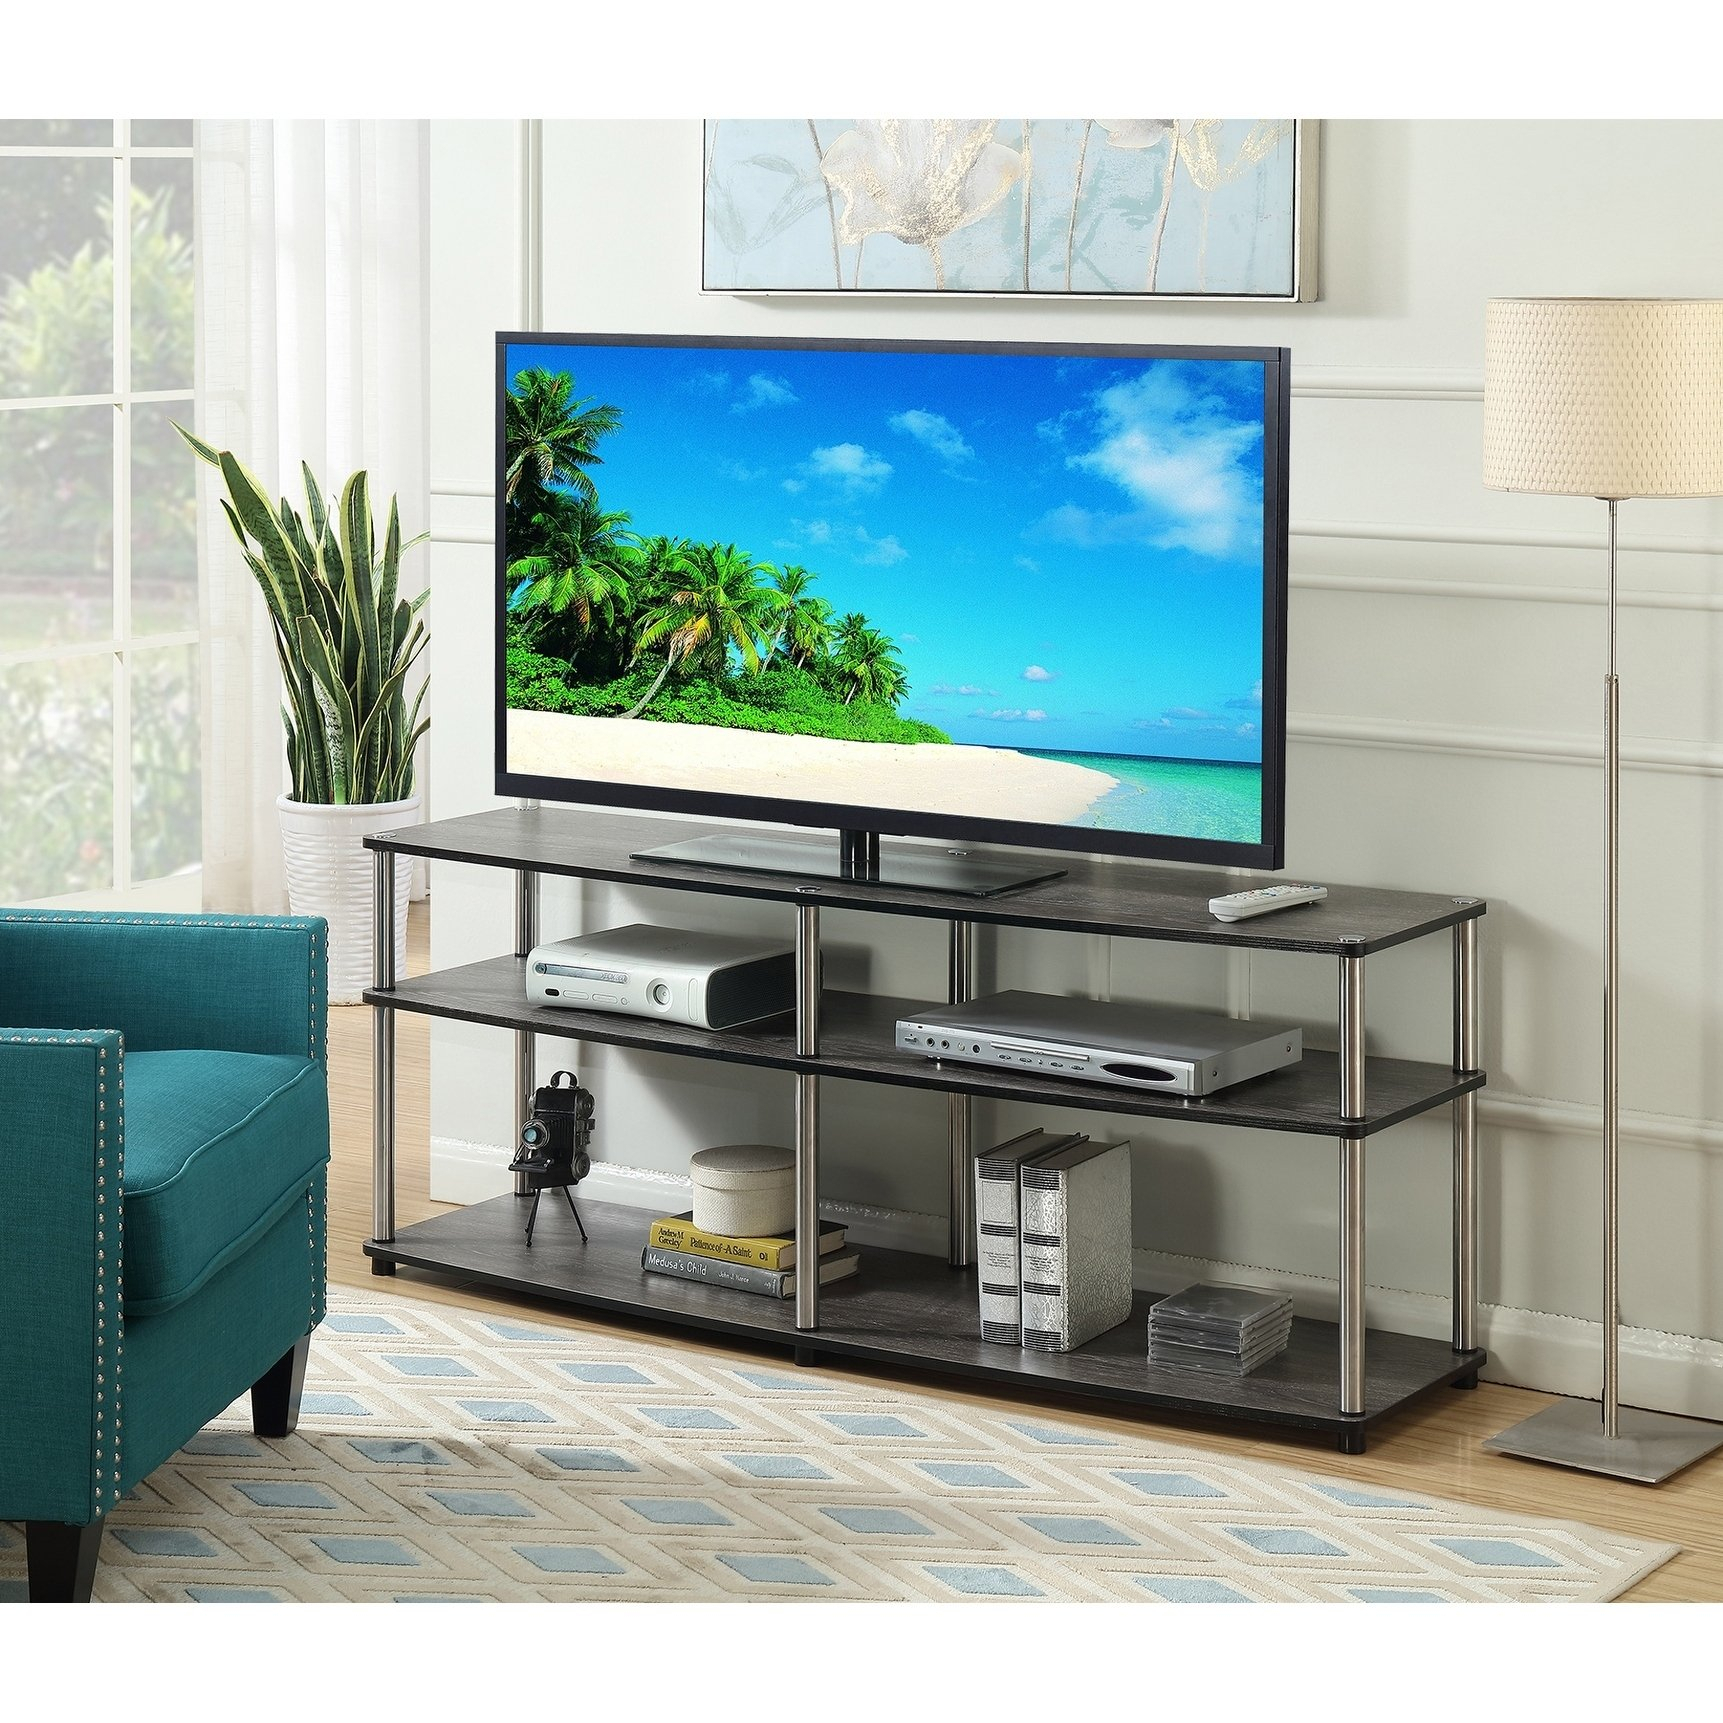 Buy Grey, 42 – 60 Inches Tv Stands & Entertainment Centers Online At For Rowan 74 Inch Tv Stands (View 5 of 30)